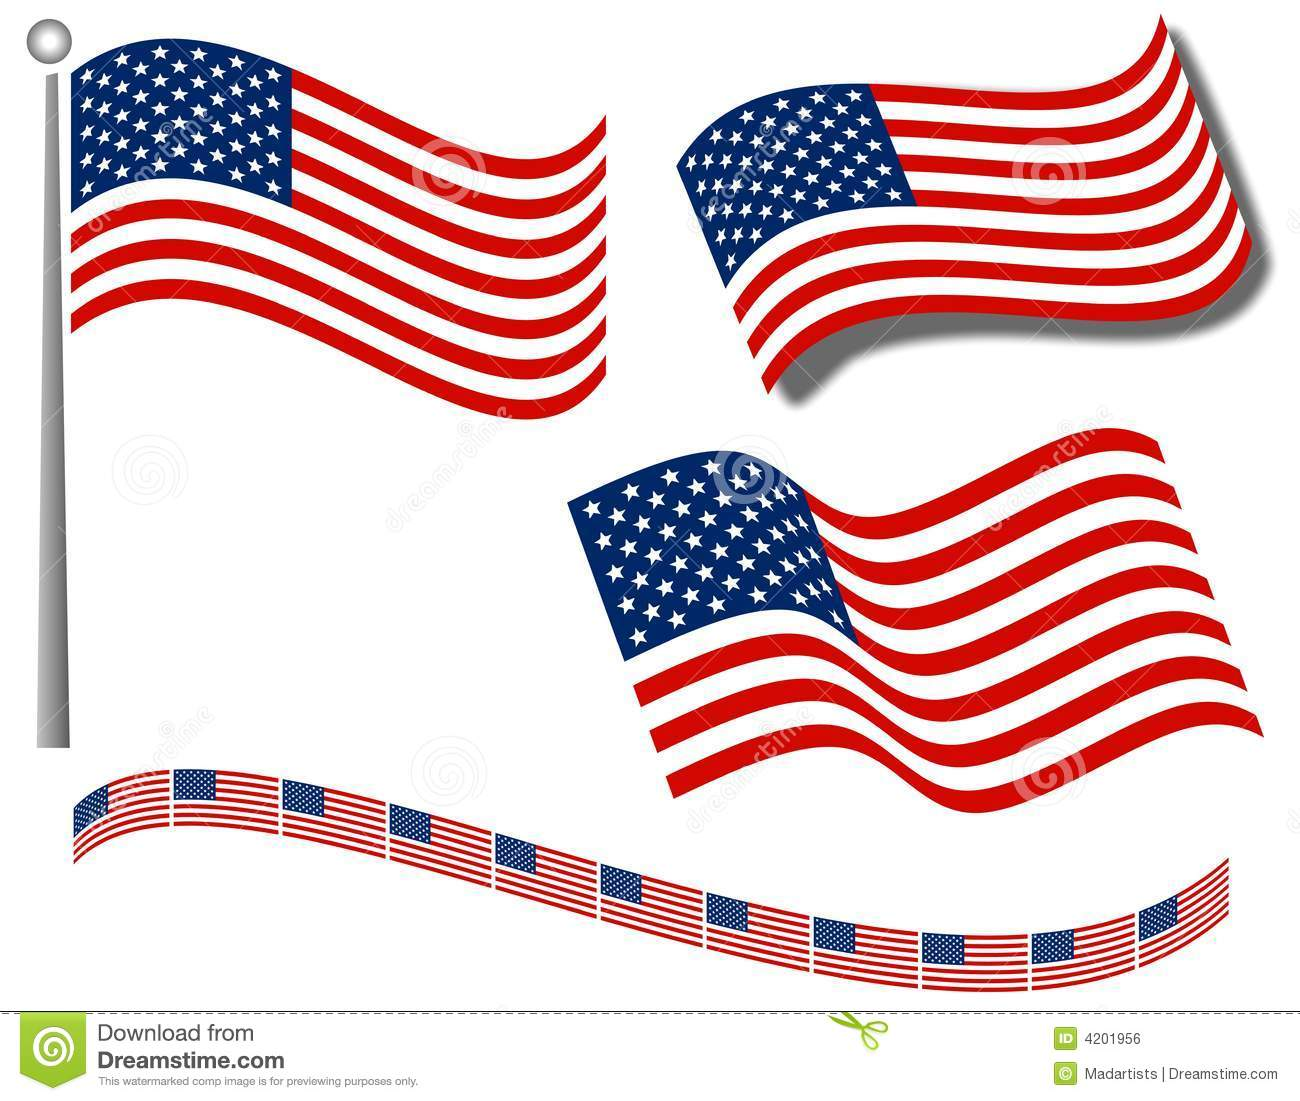 american flags clip art and divider stock illustration rh dreamstime com american flag clip art printable american flag clip art borders